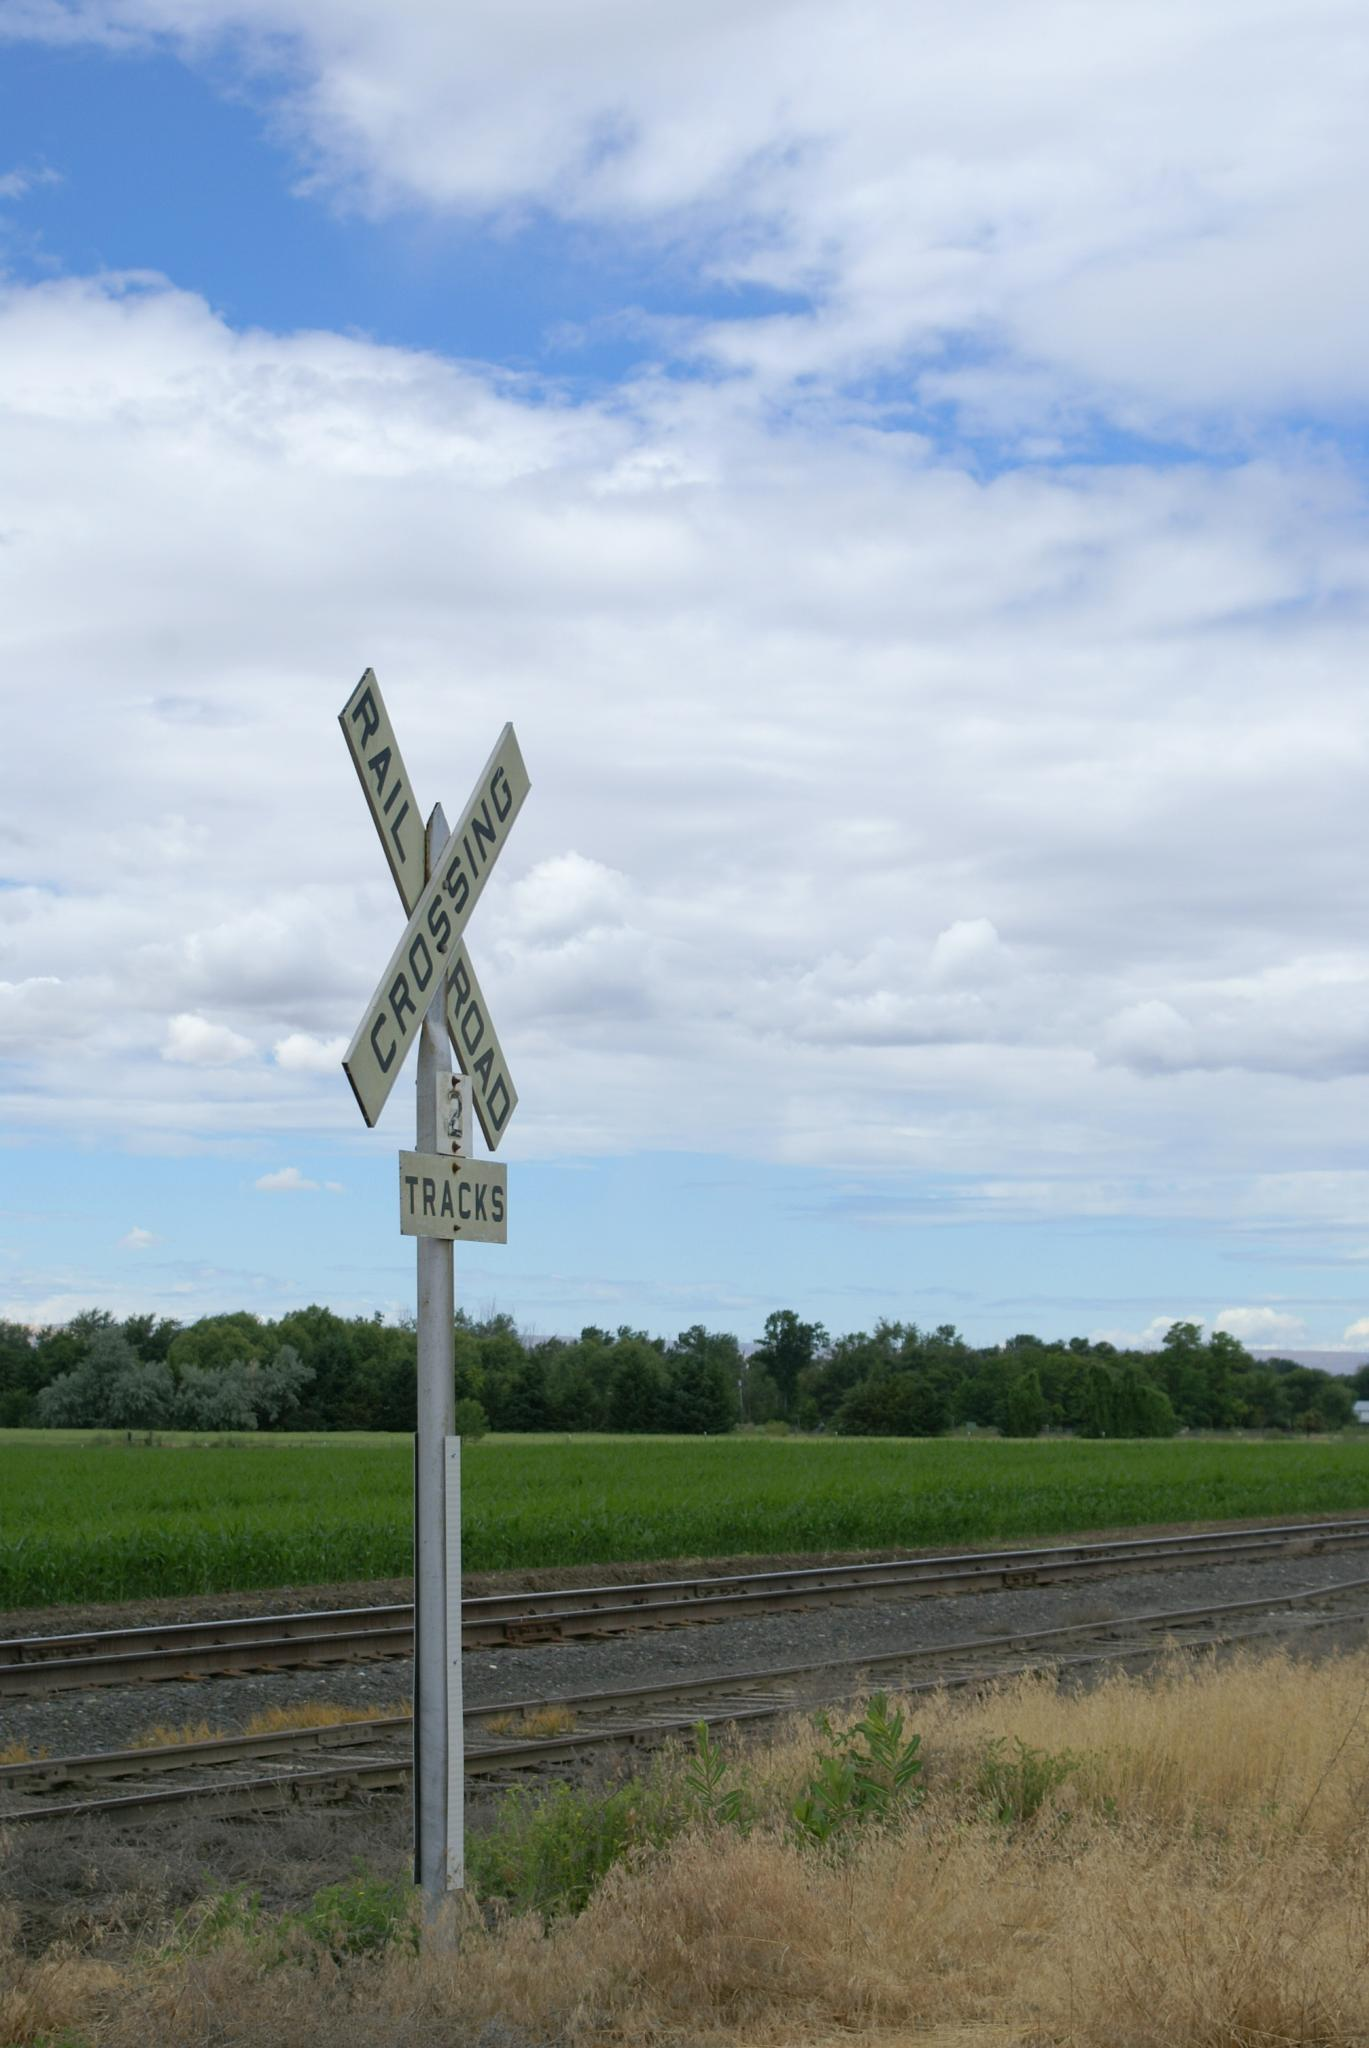 Railroad Crossing by shawna.morgan.7